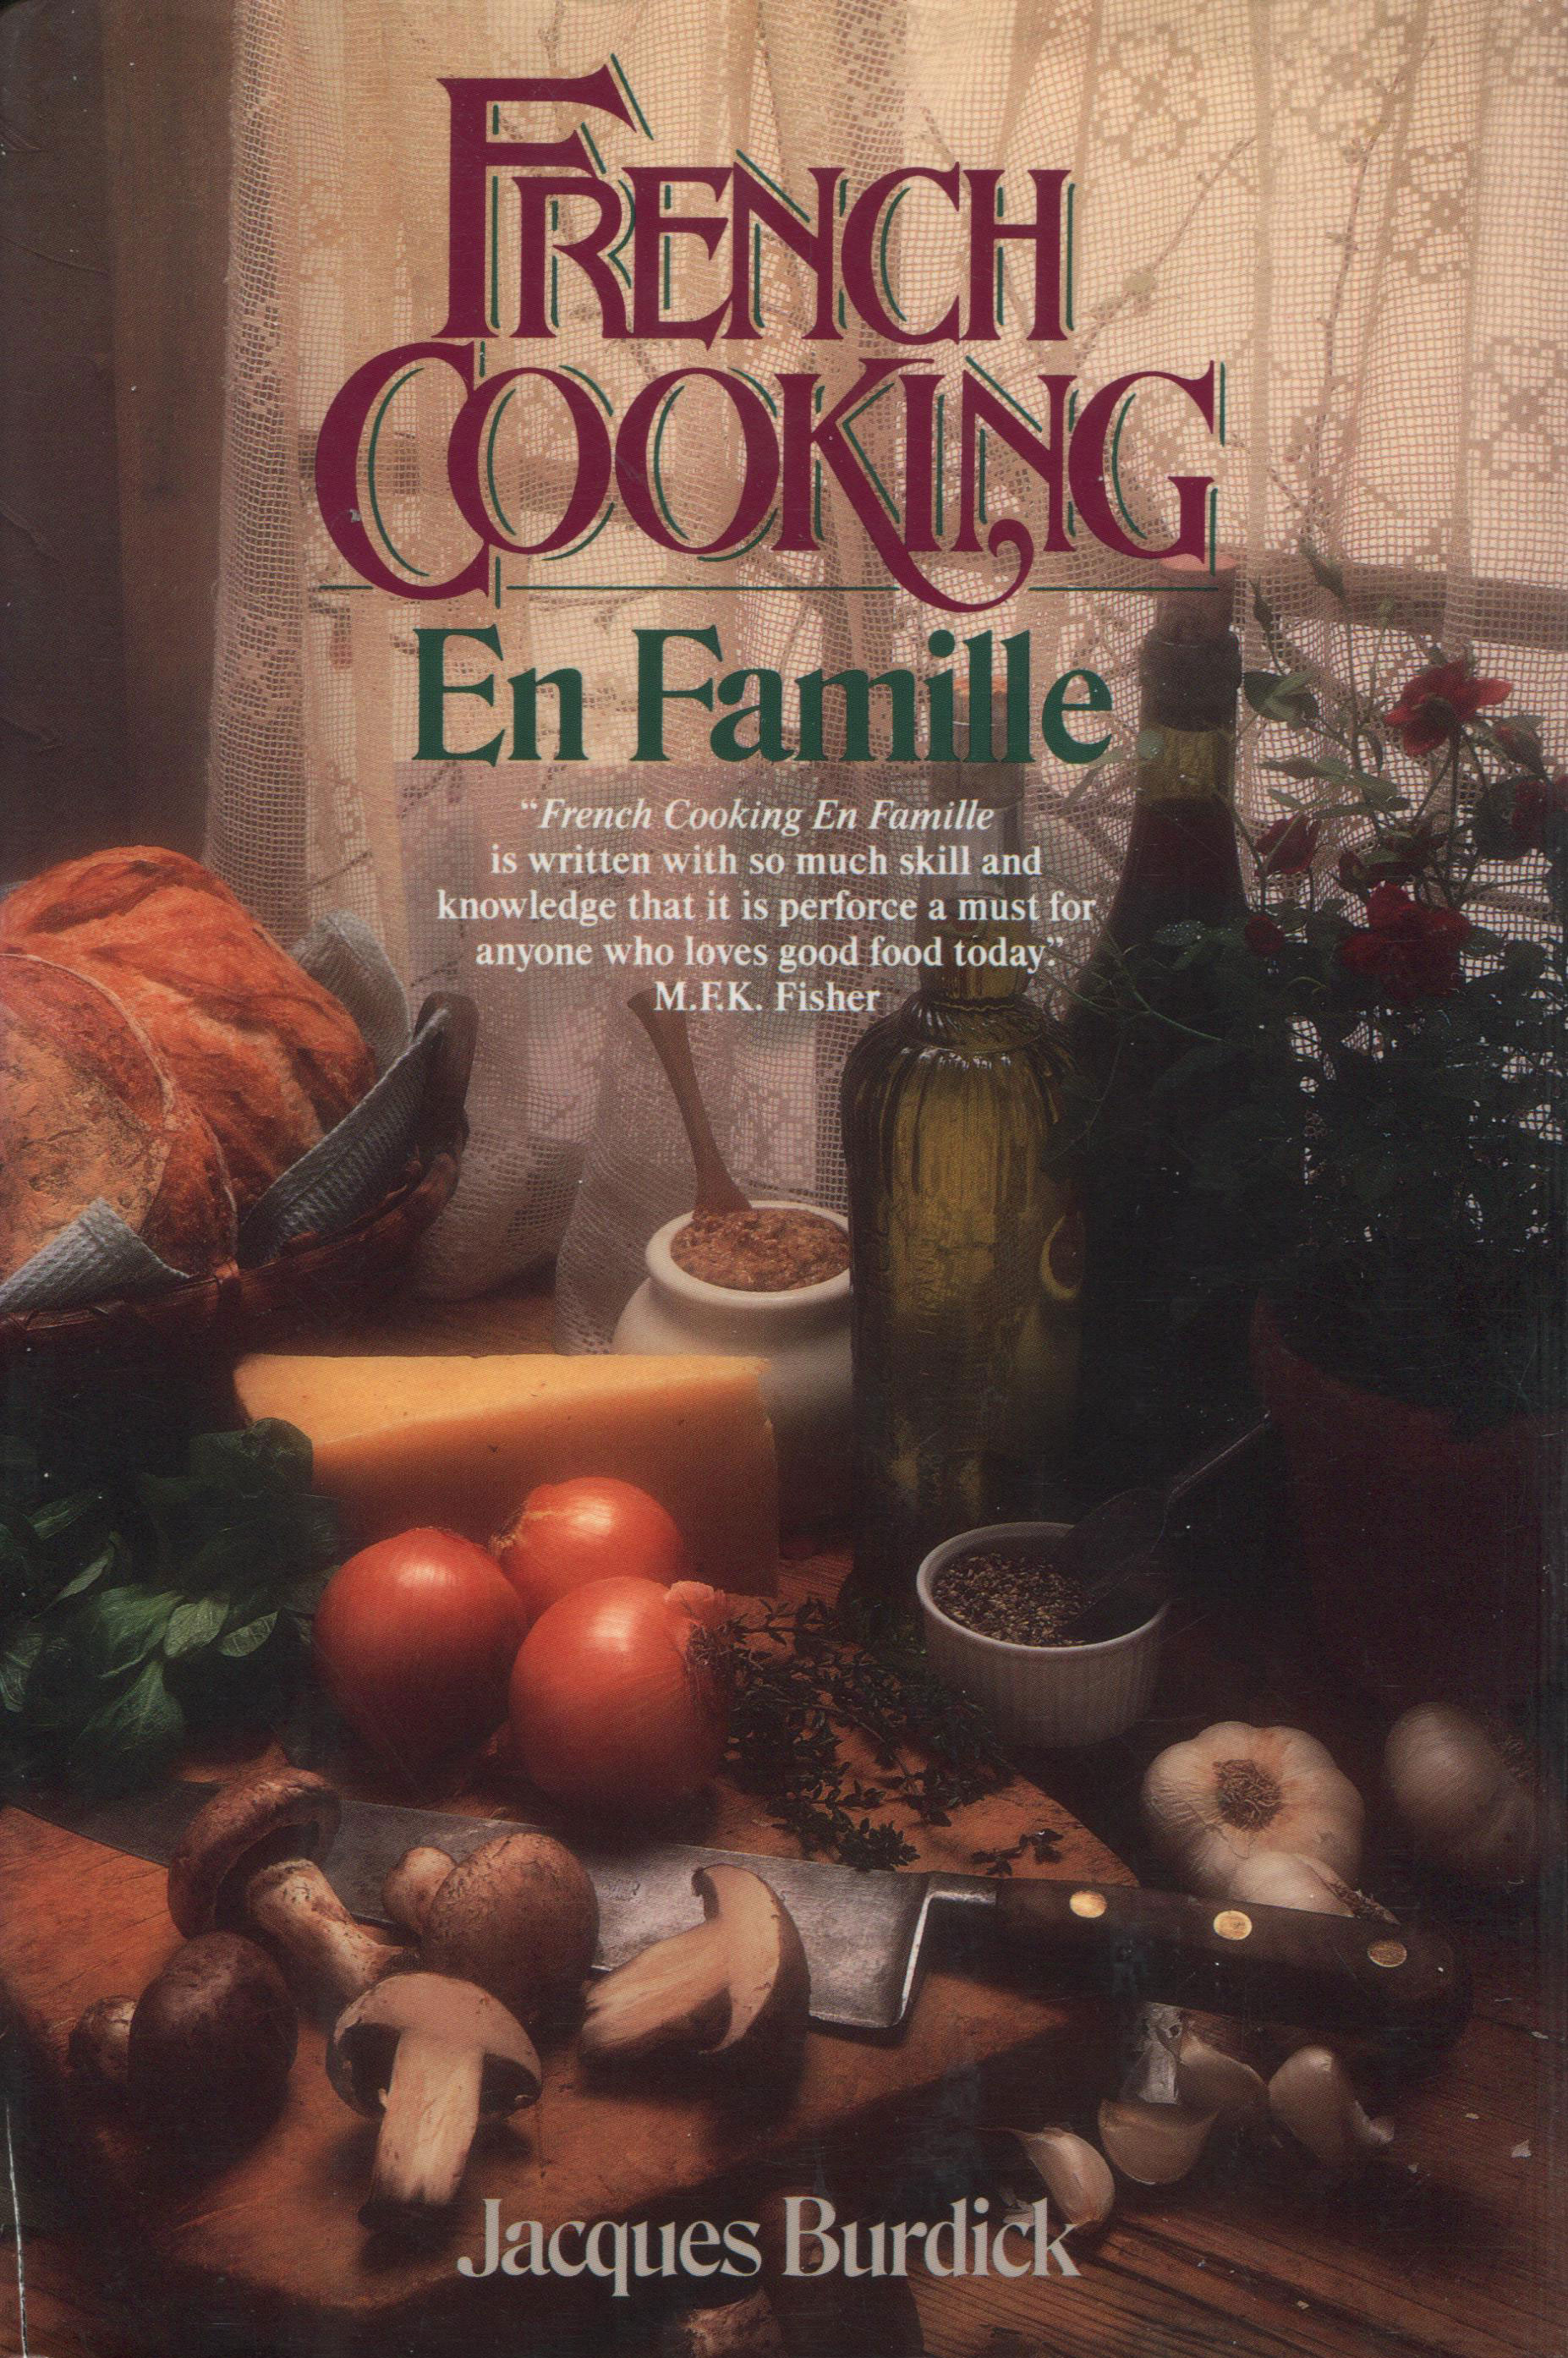 TBT Cookbook Review